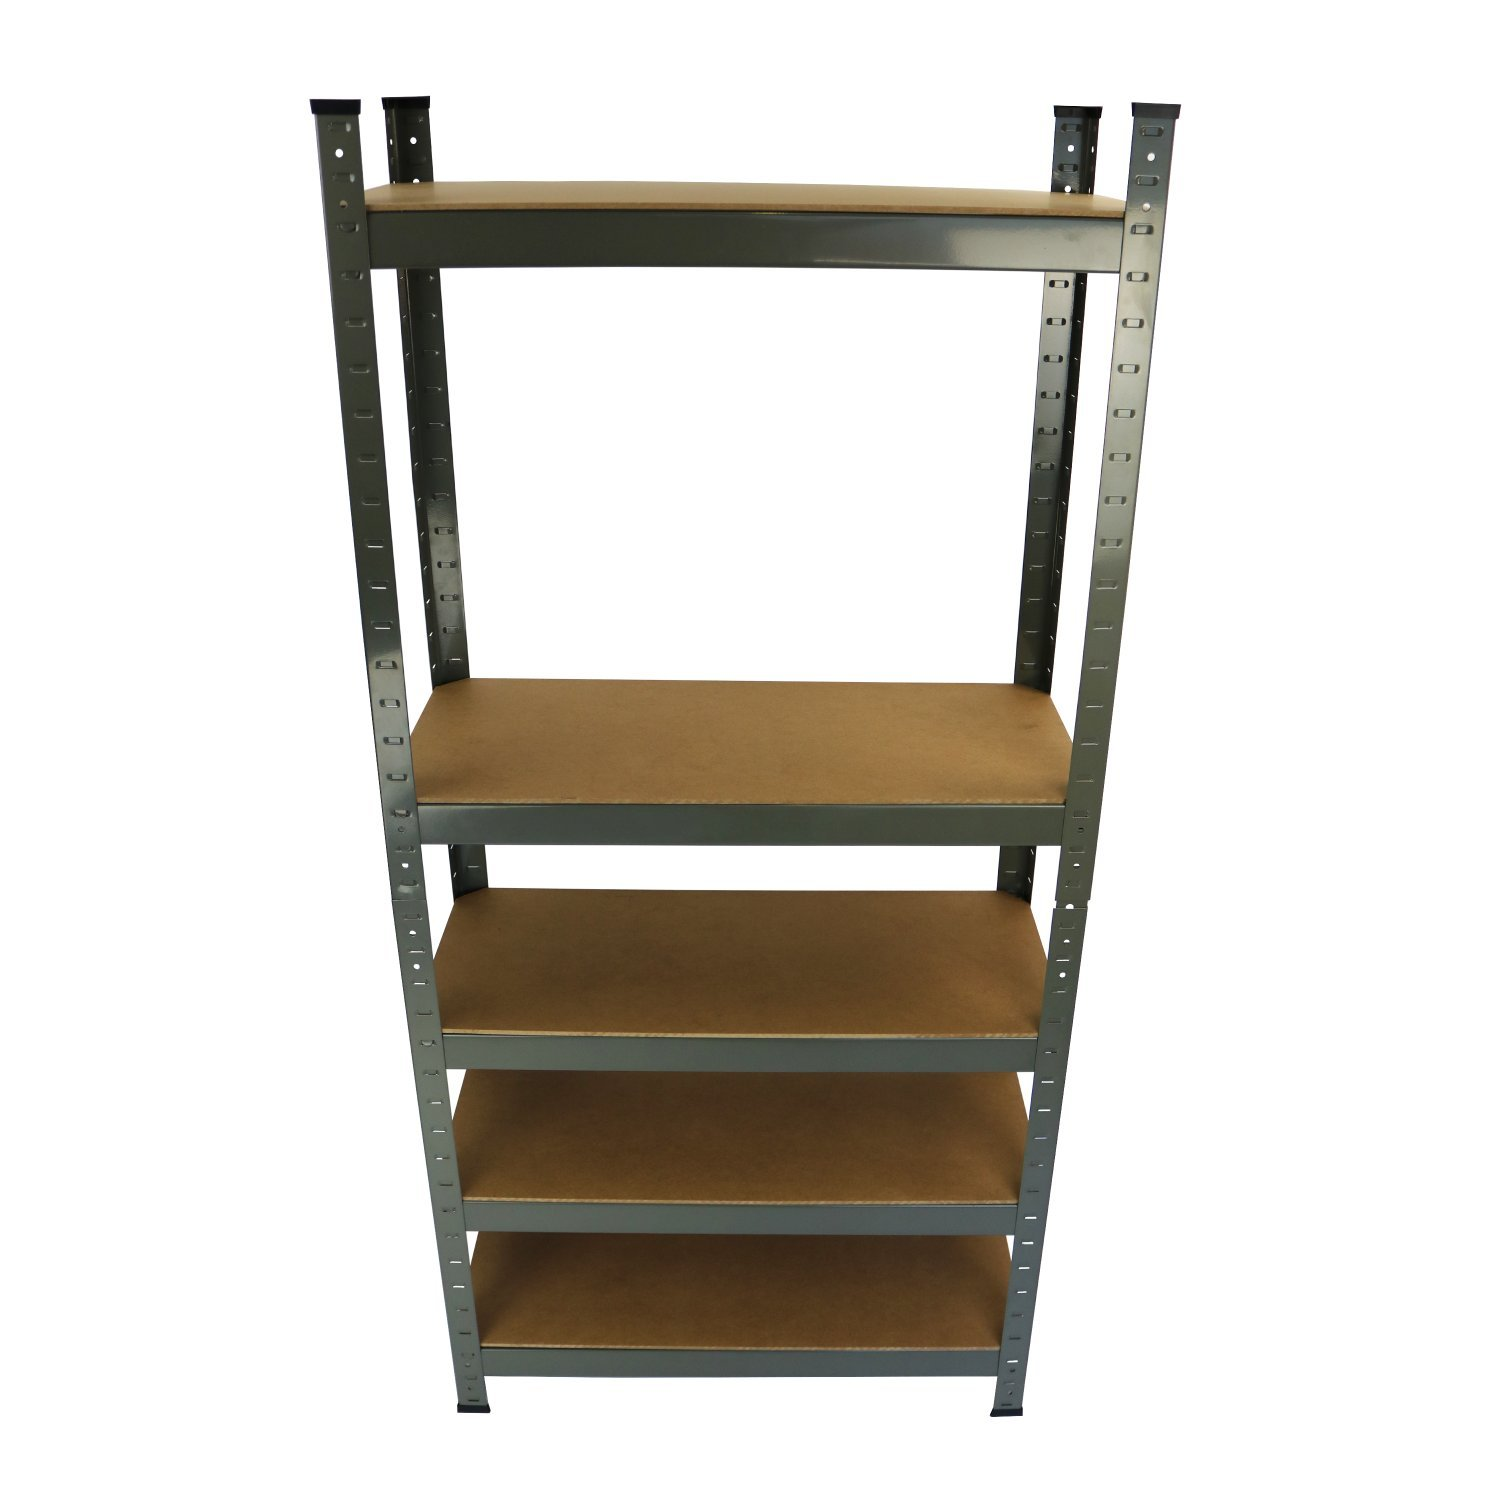 new 4 tier black plastic heavy duty shelving racking file. Black Bedroom Furniture Sets. Home Design Ideas